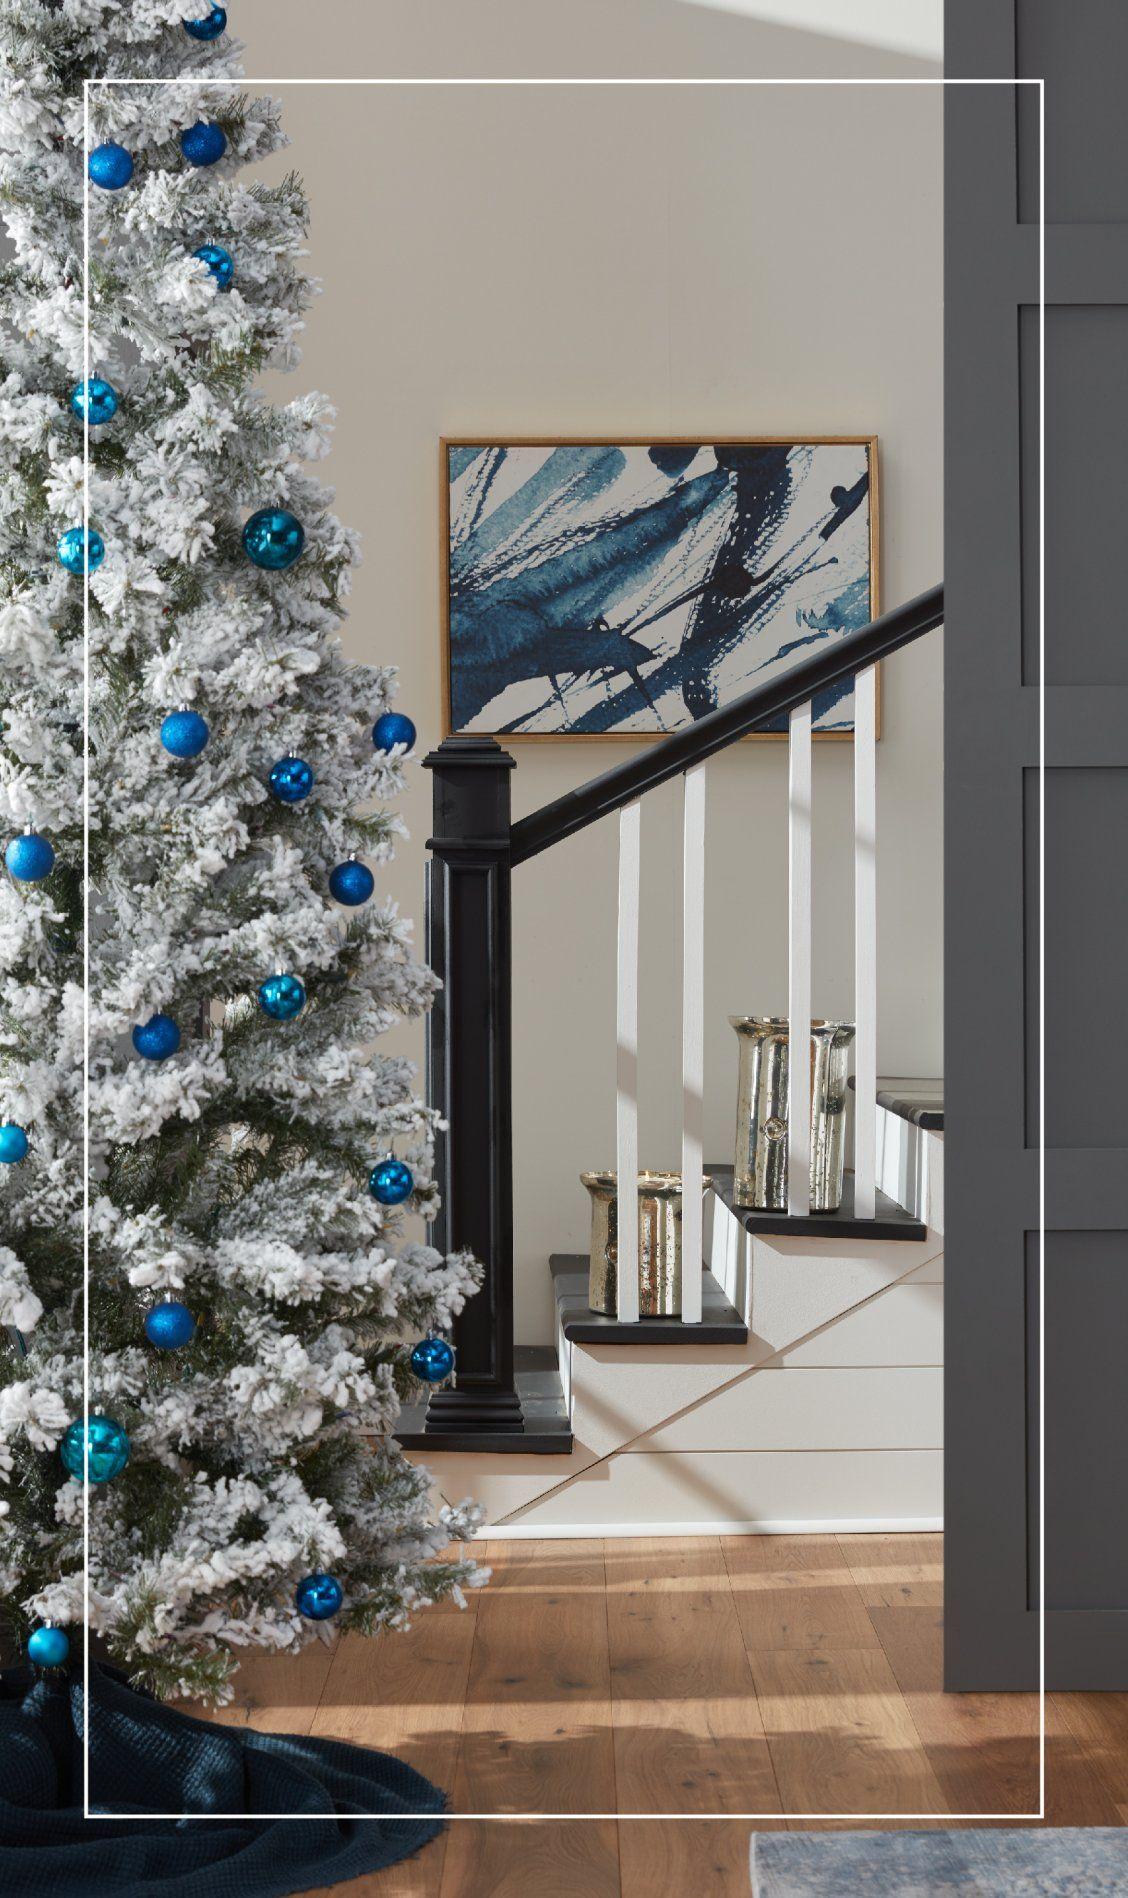 Shop Overstock And Save Big On The Christmas Tree Of Your Dreams With Beautiful Styl Traditional Christmas Decorations Christmas Staircase Decor Holiday Decor